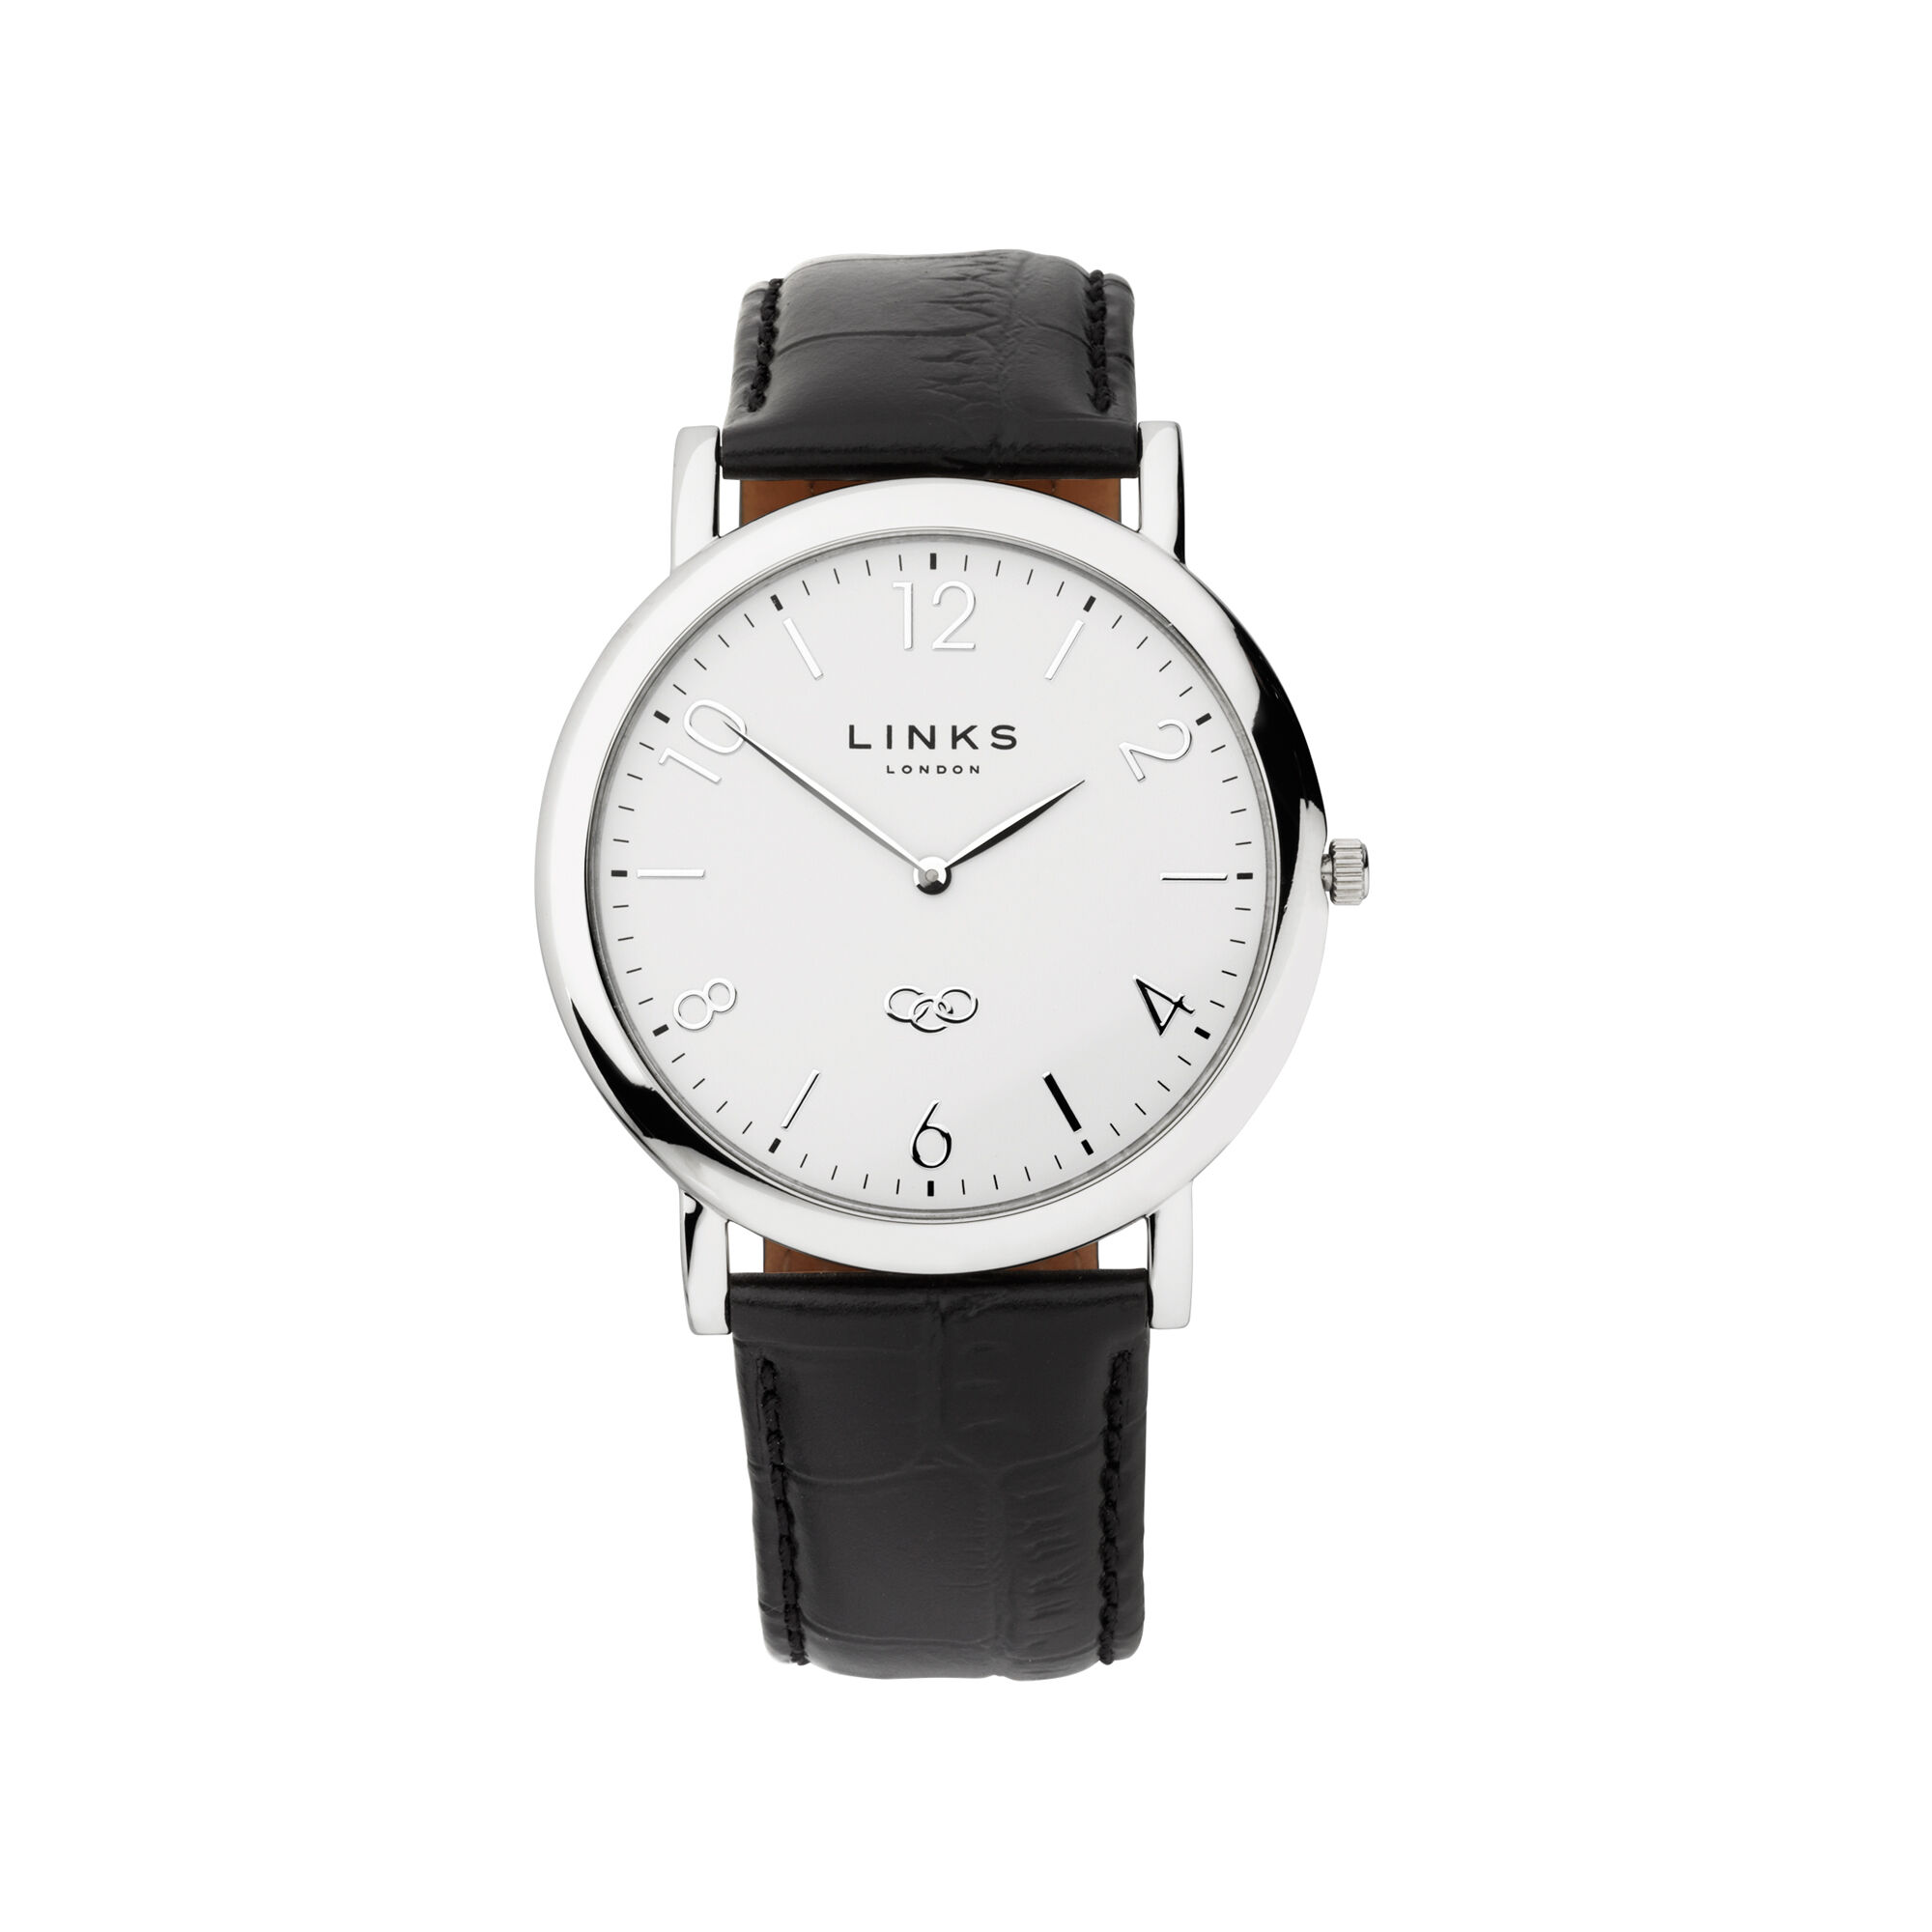 lyst gallery accessories womens glitter product strap watches guess watch leather black in no color